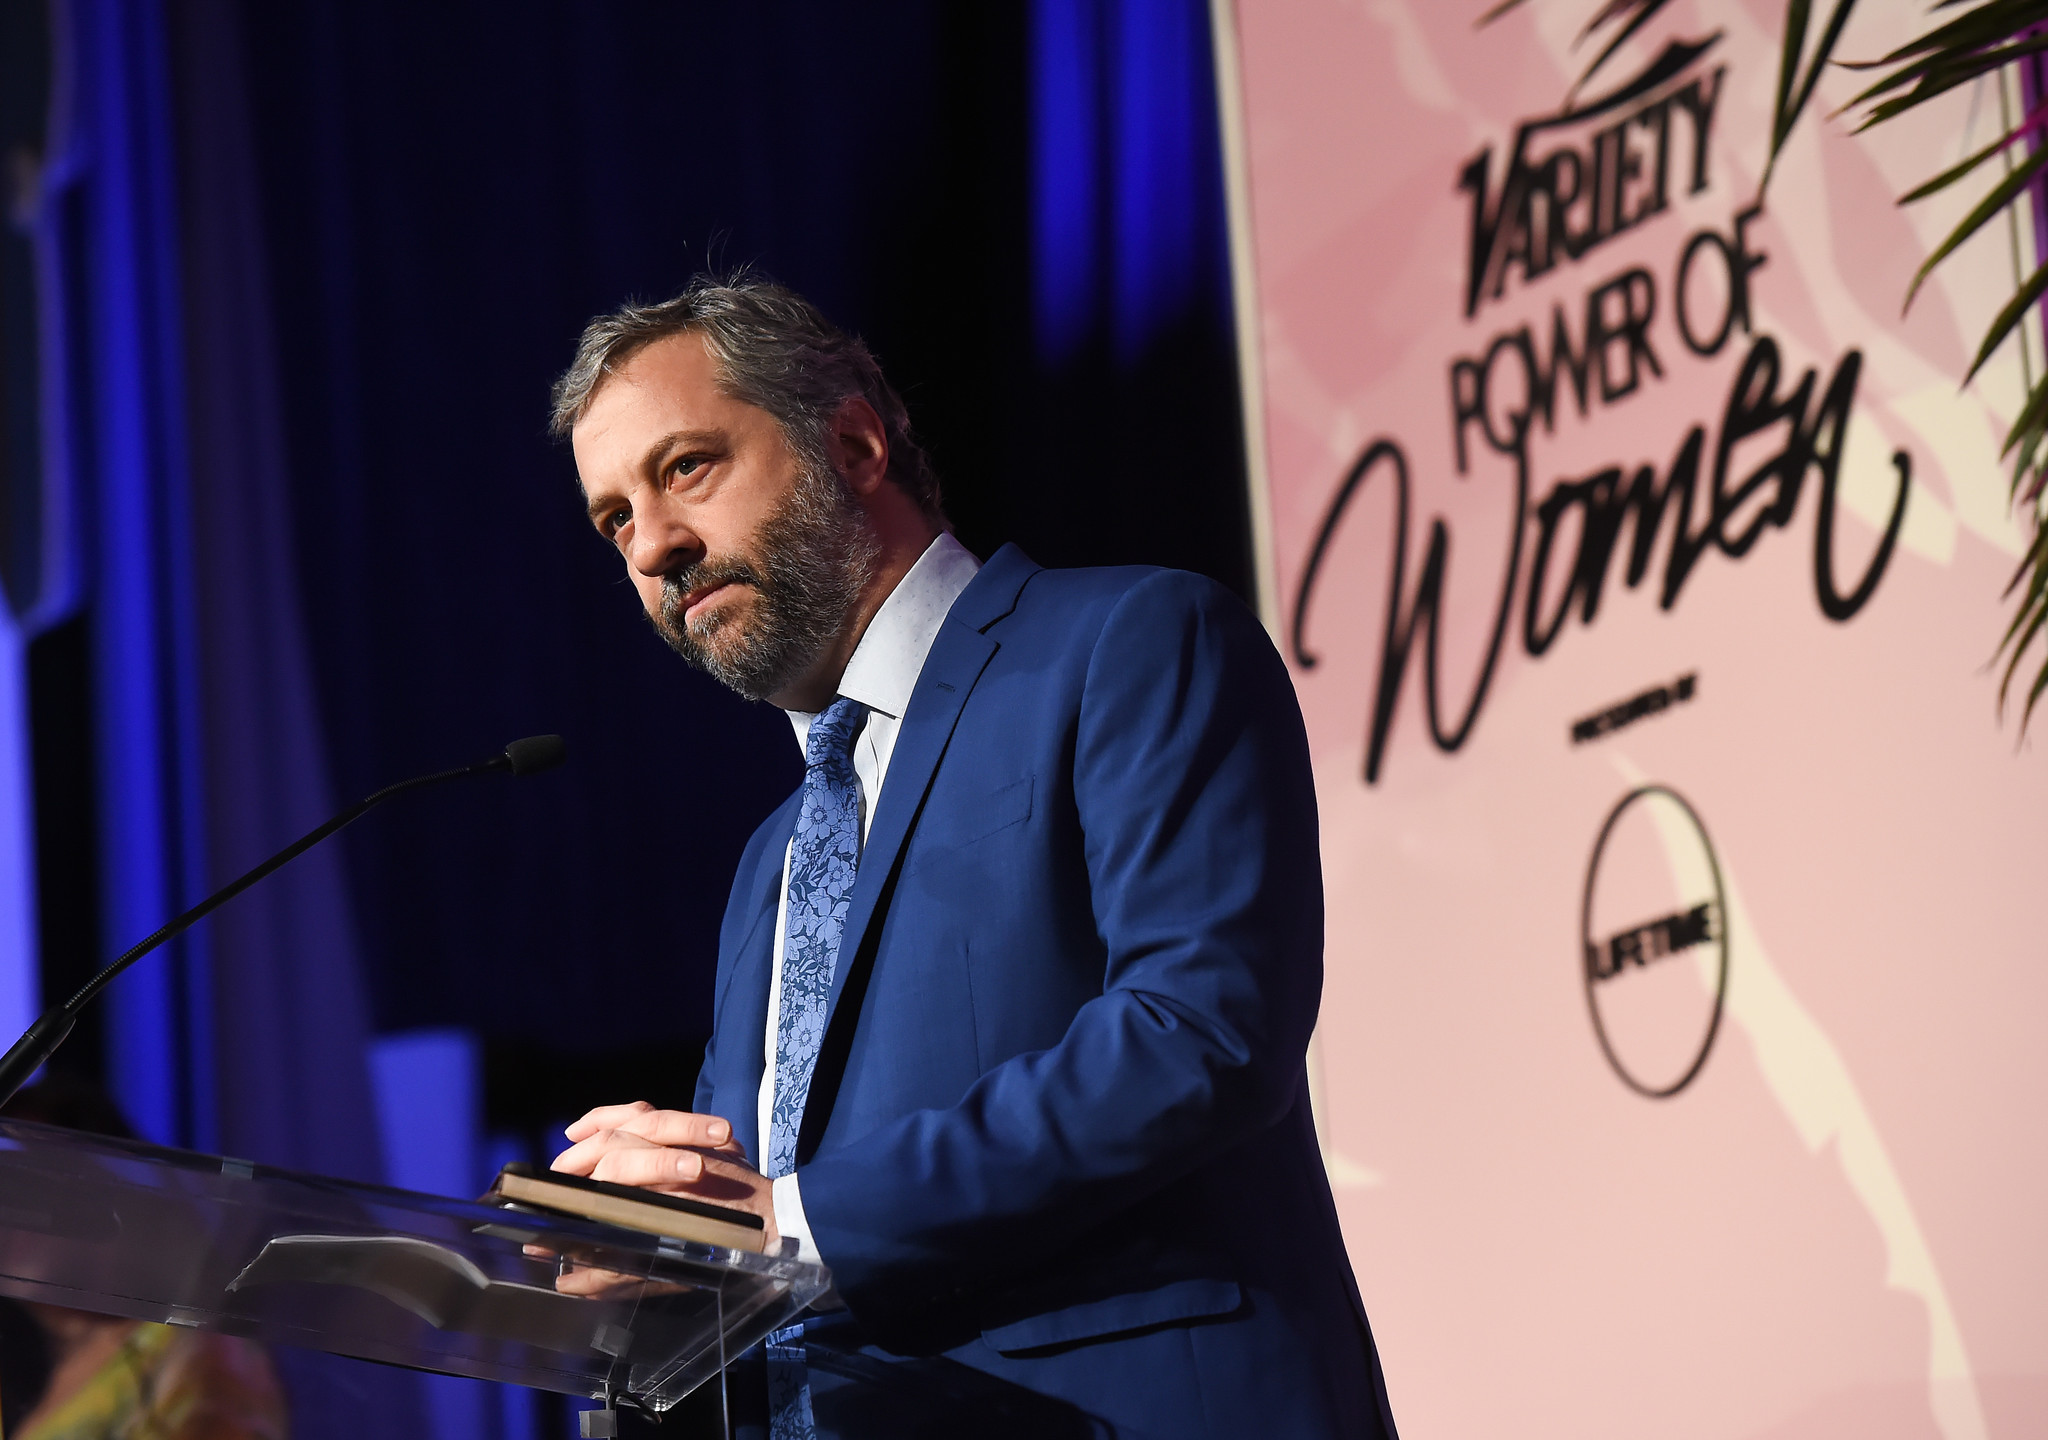 Judd Apatow onstage during Variety's Power of Women luncheon in Beverly Hills.